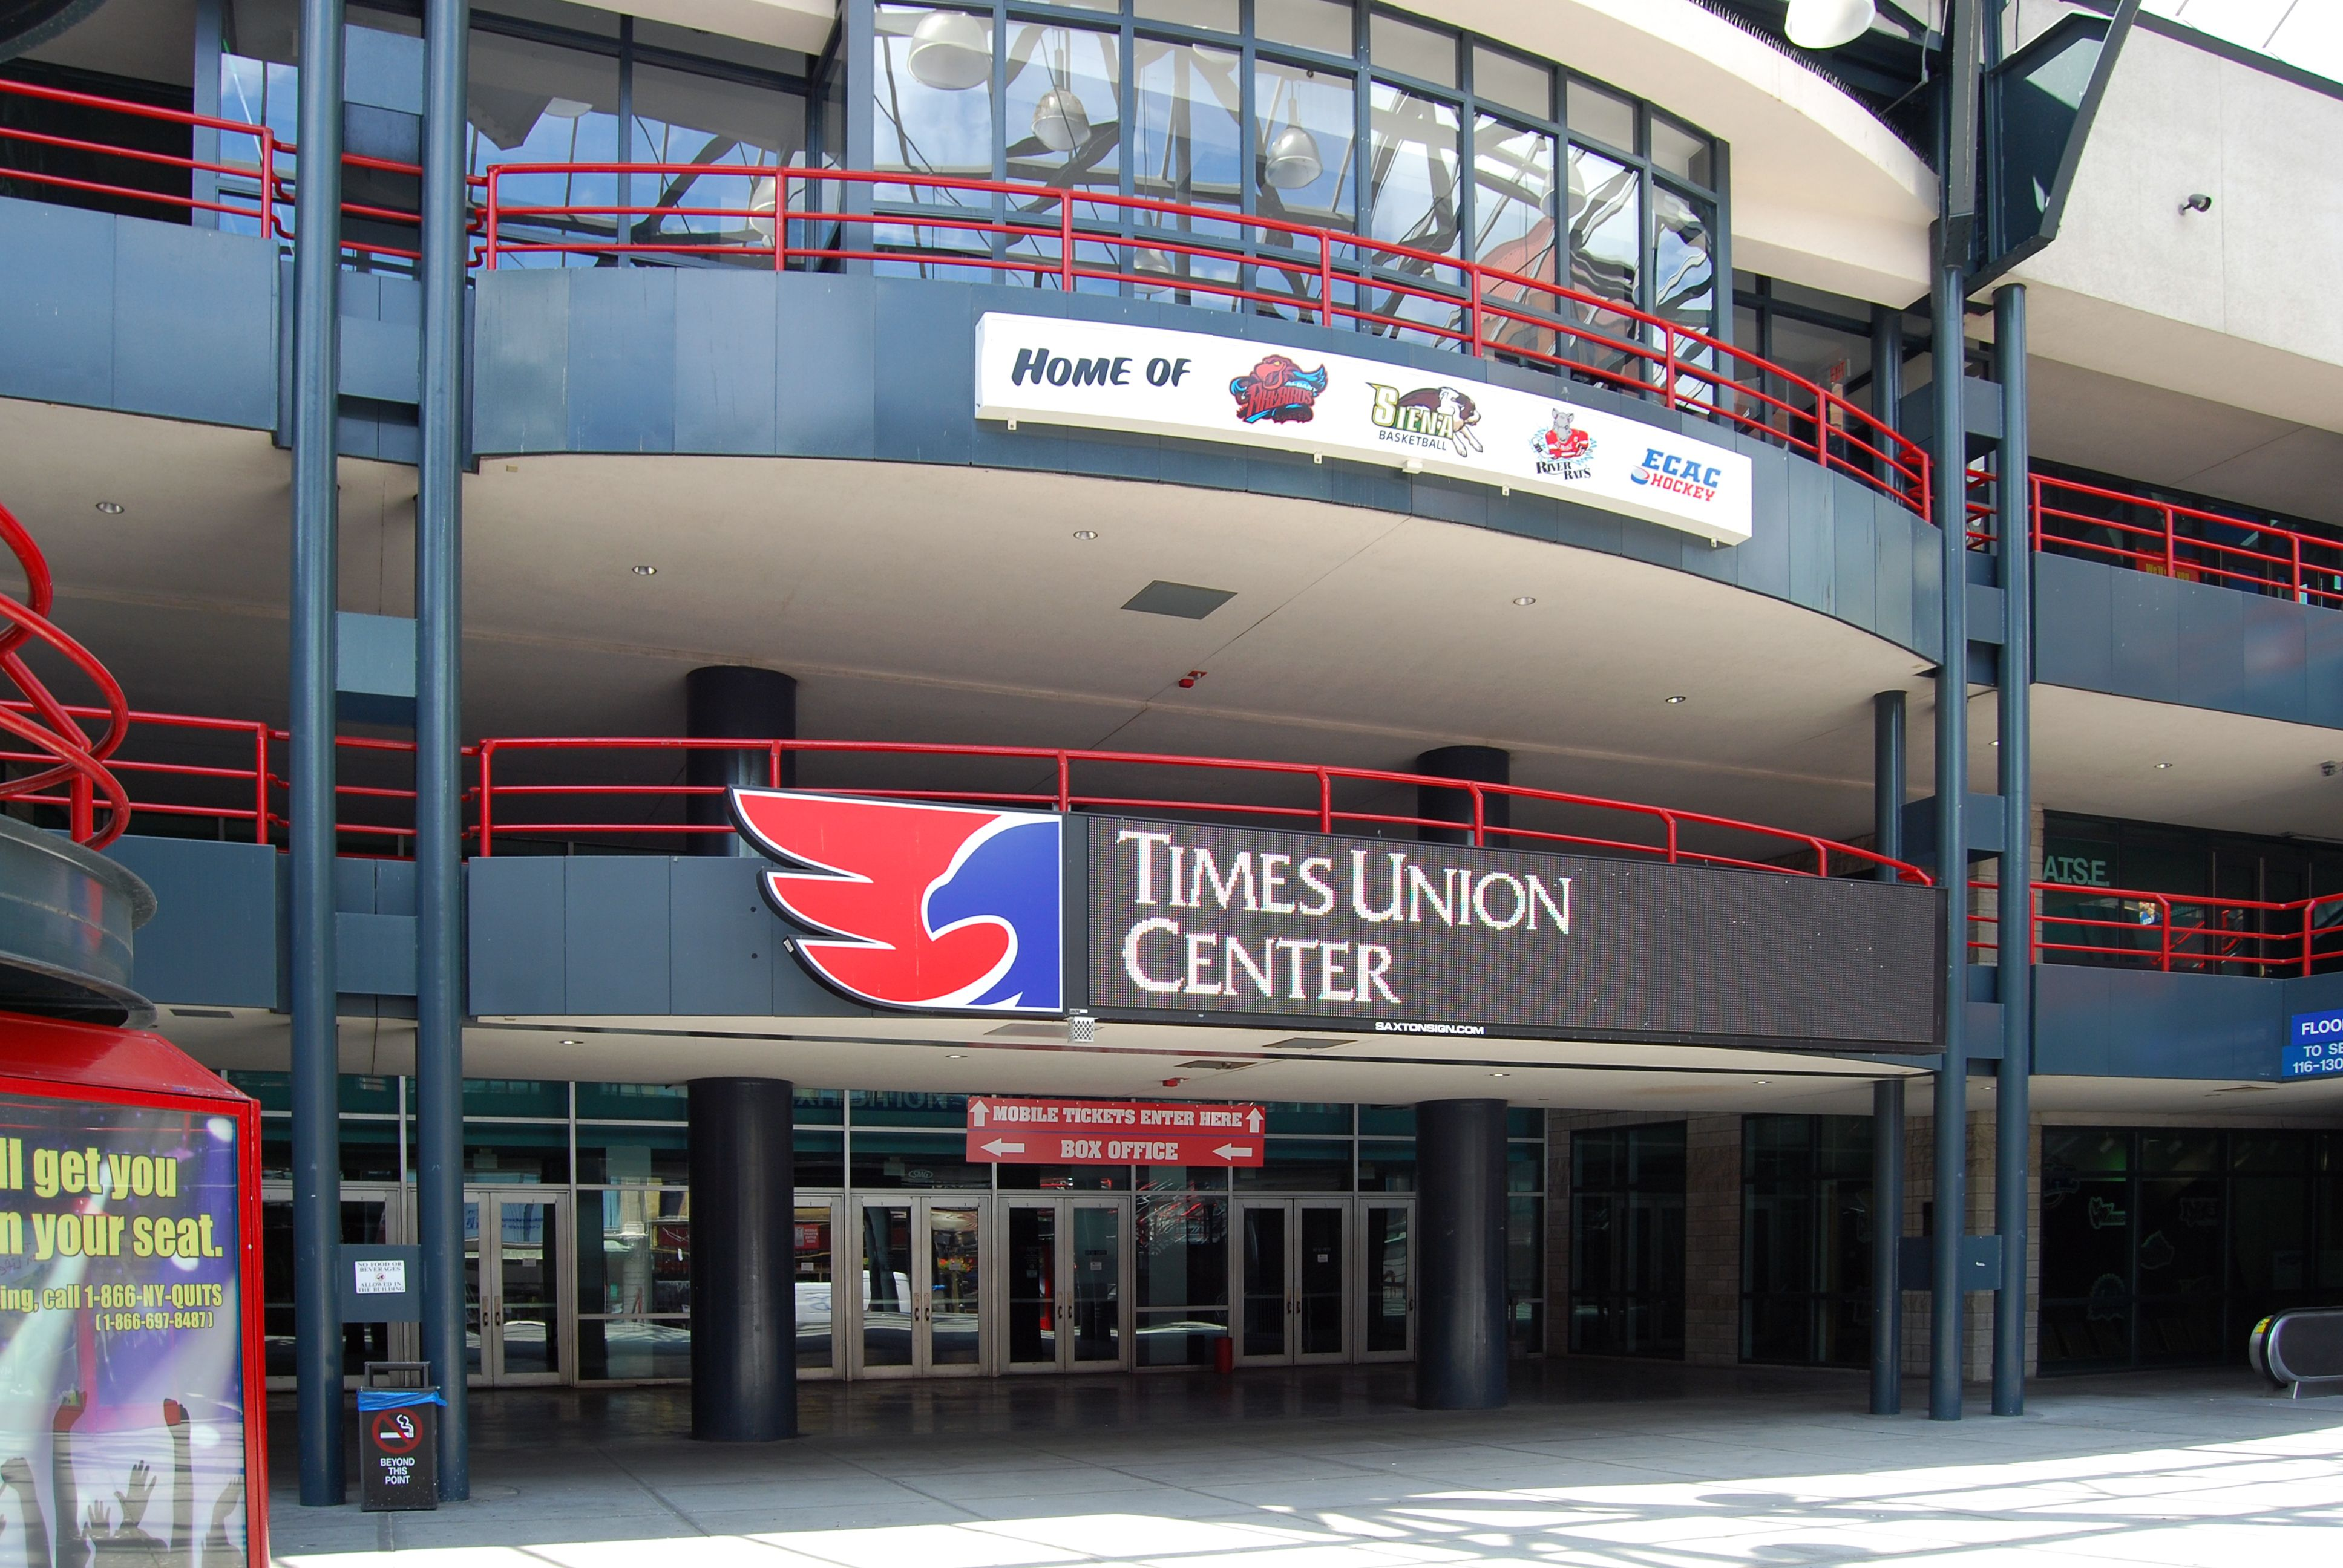 Times Union Center With Images Capital Region Capital District Albany